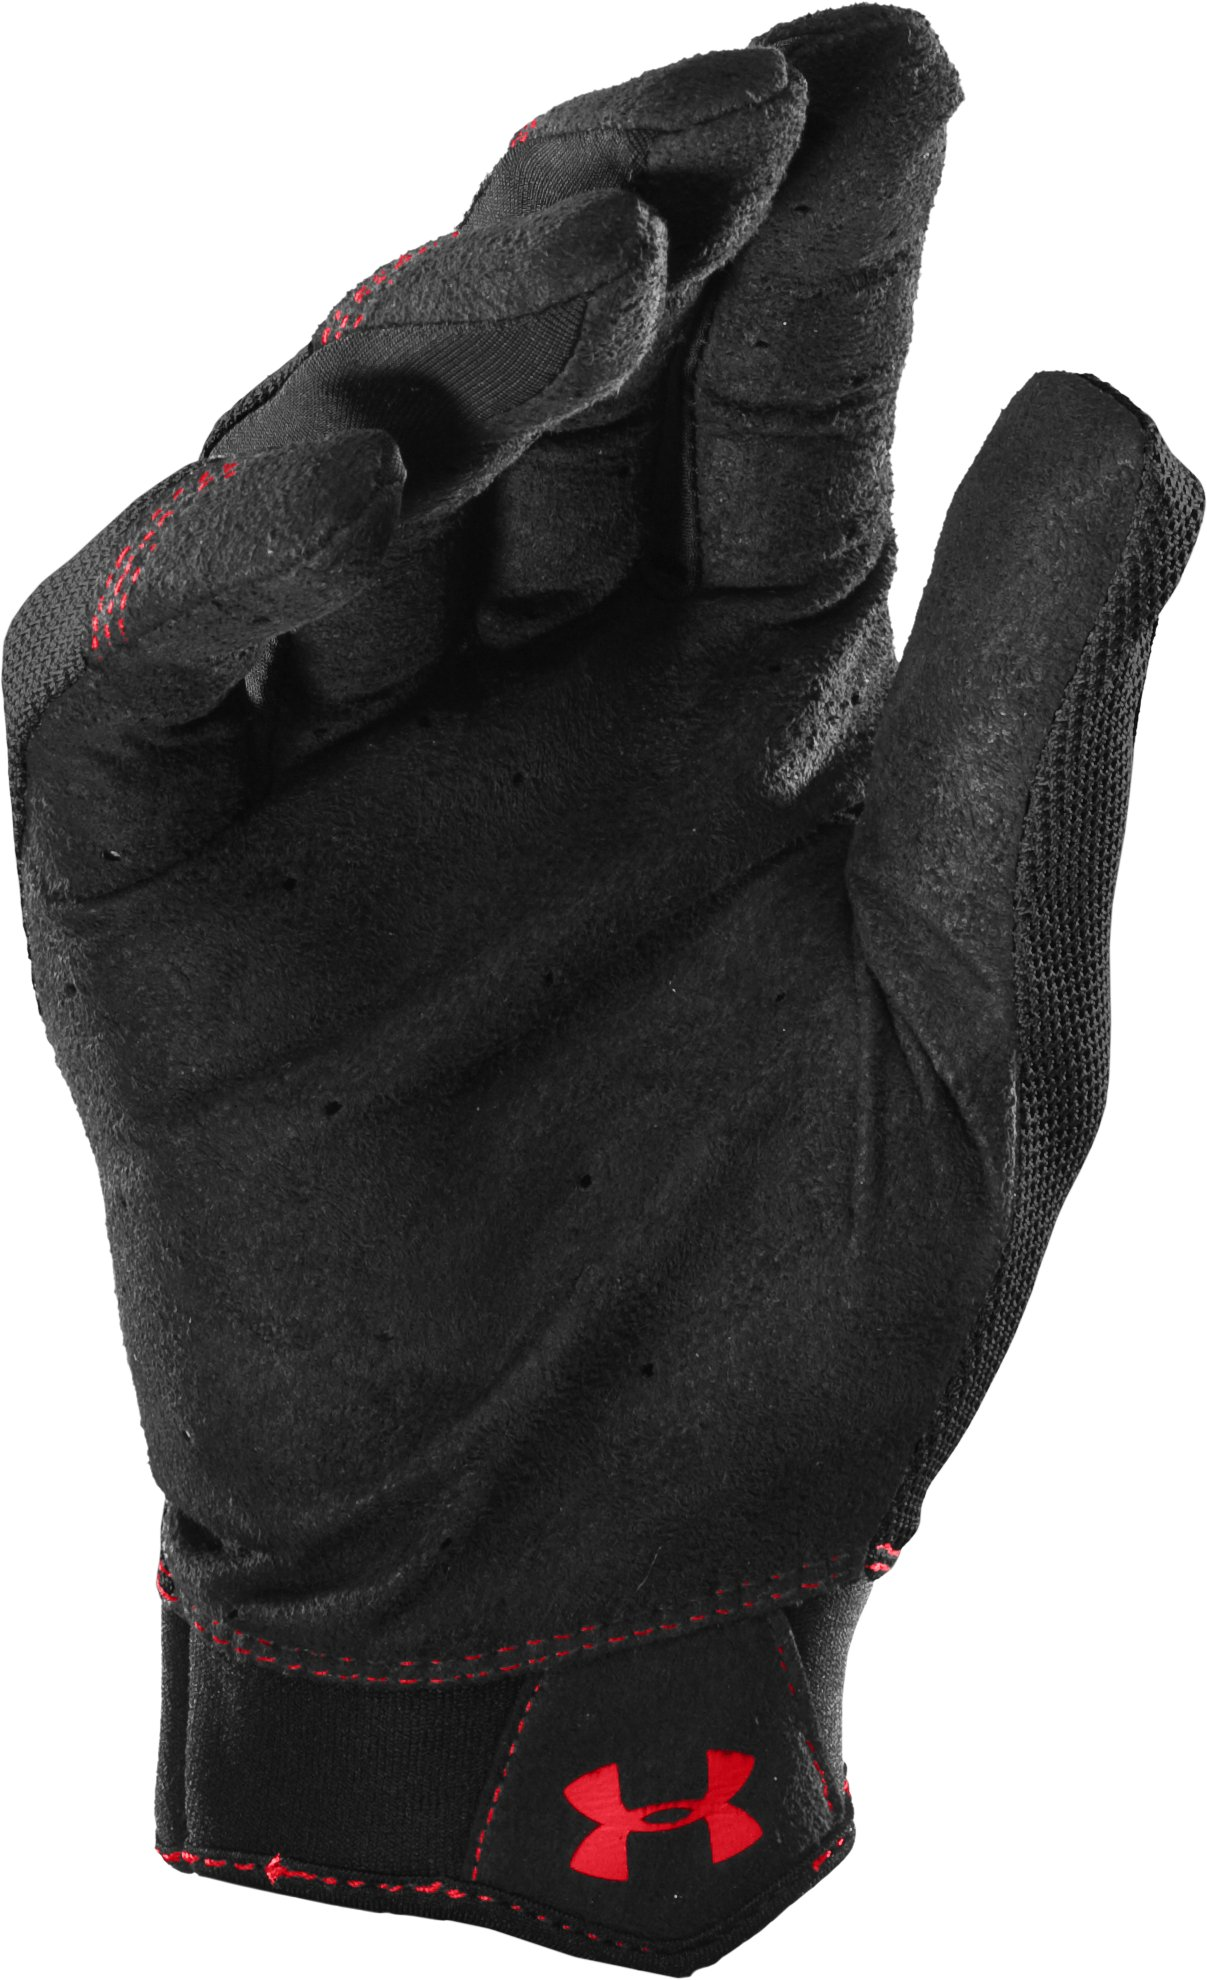 Ventilator Gloves, Black